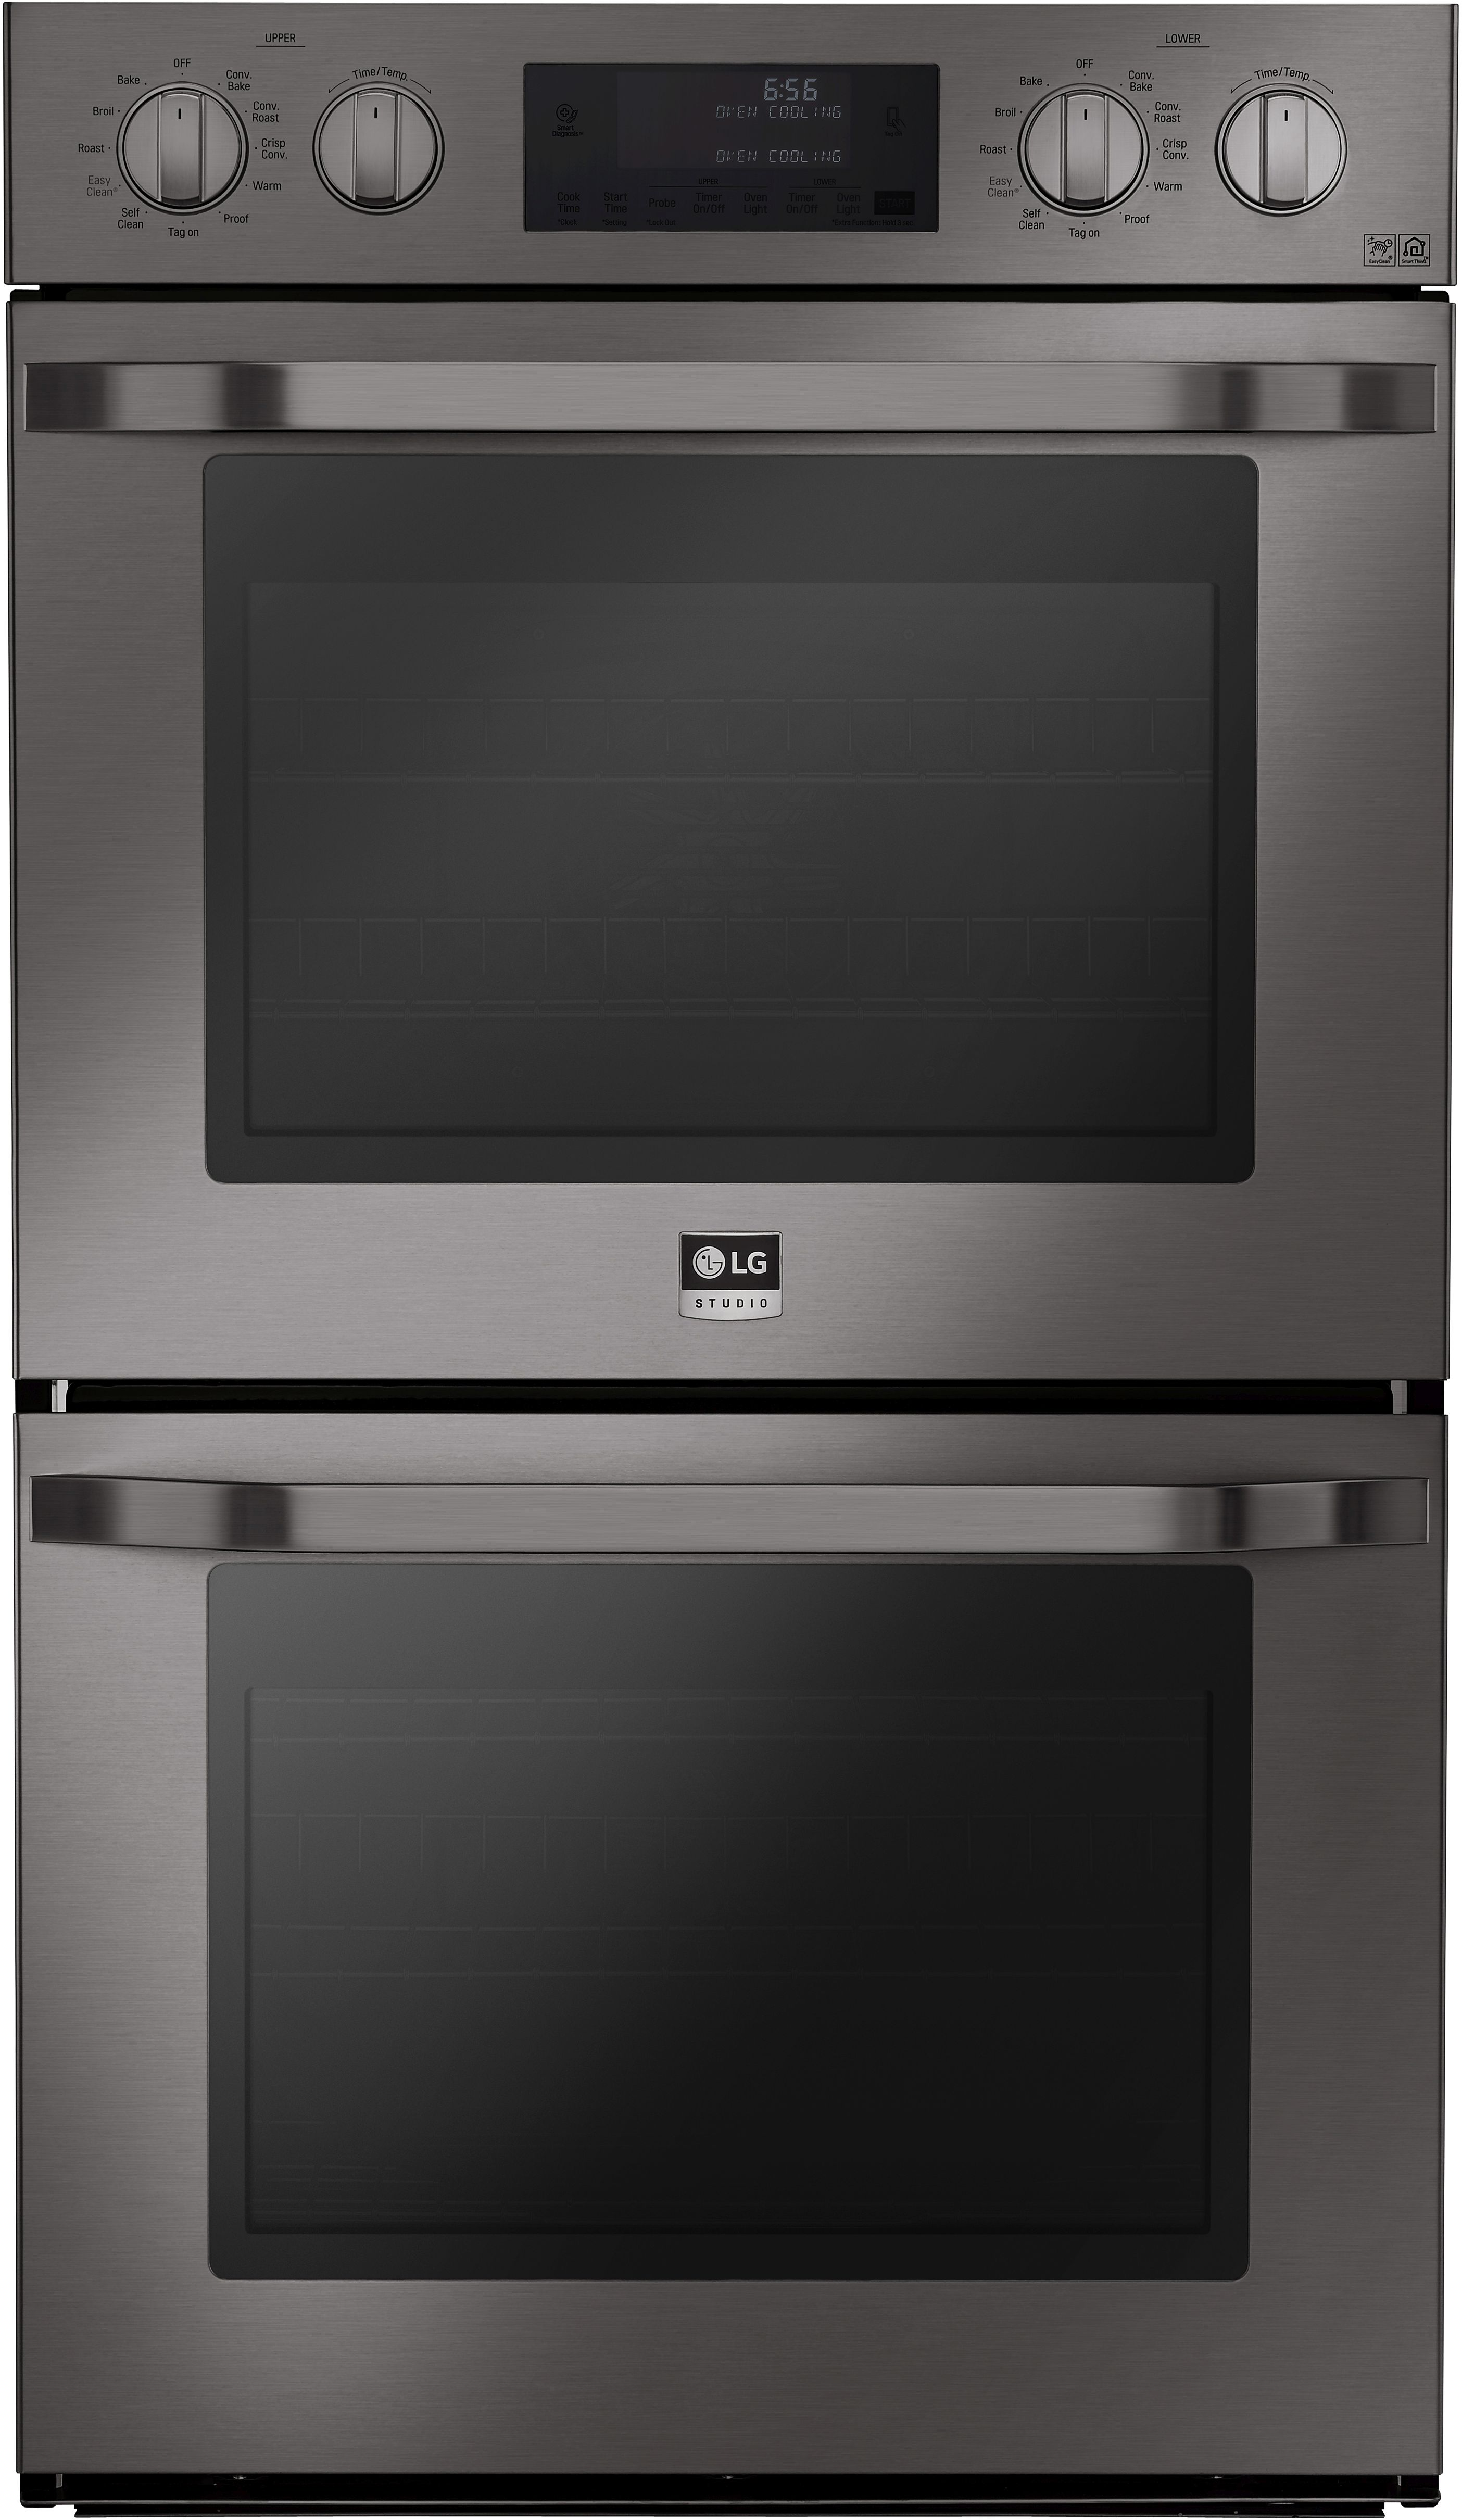 Lg 30 Electric Built In Double Wall Oven Black Stainless Steel